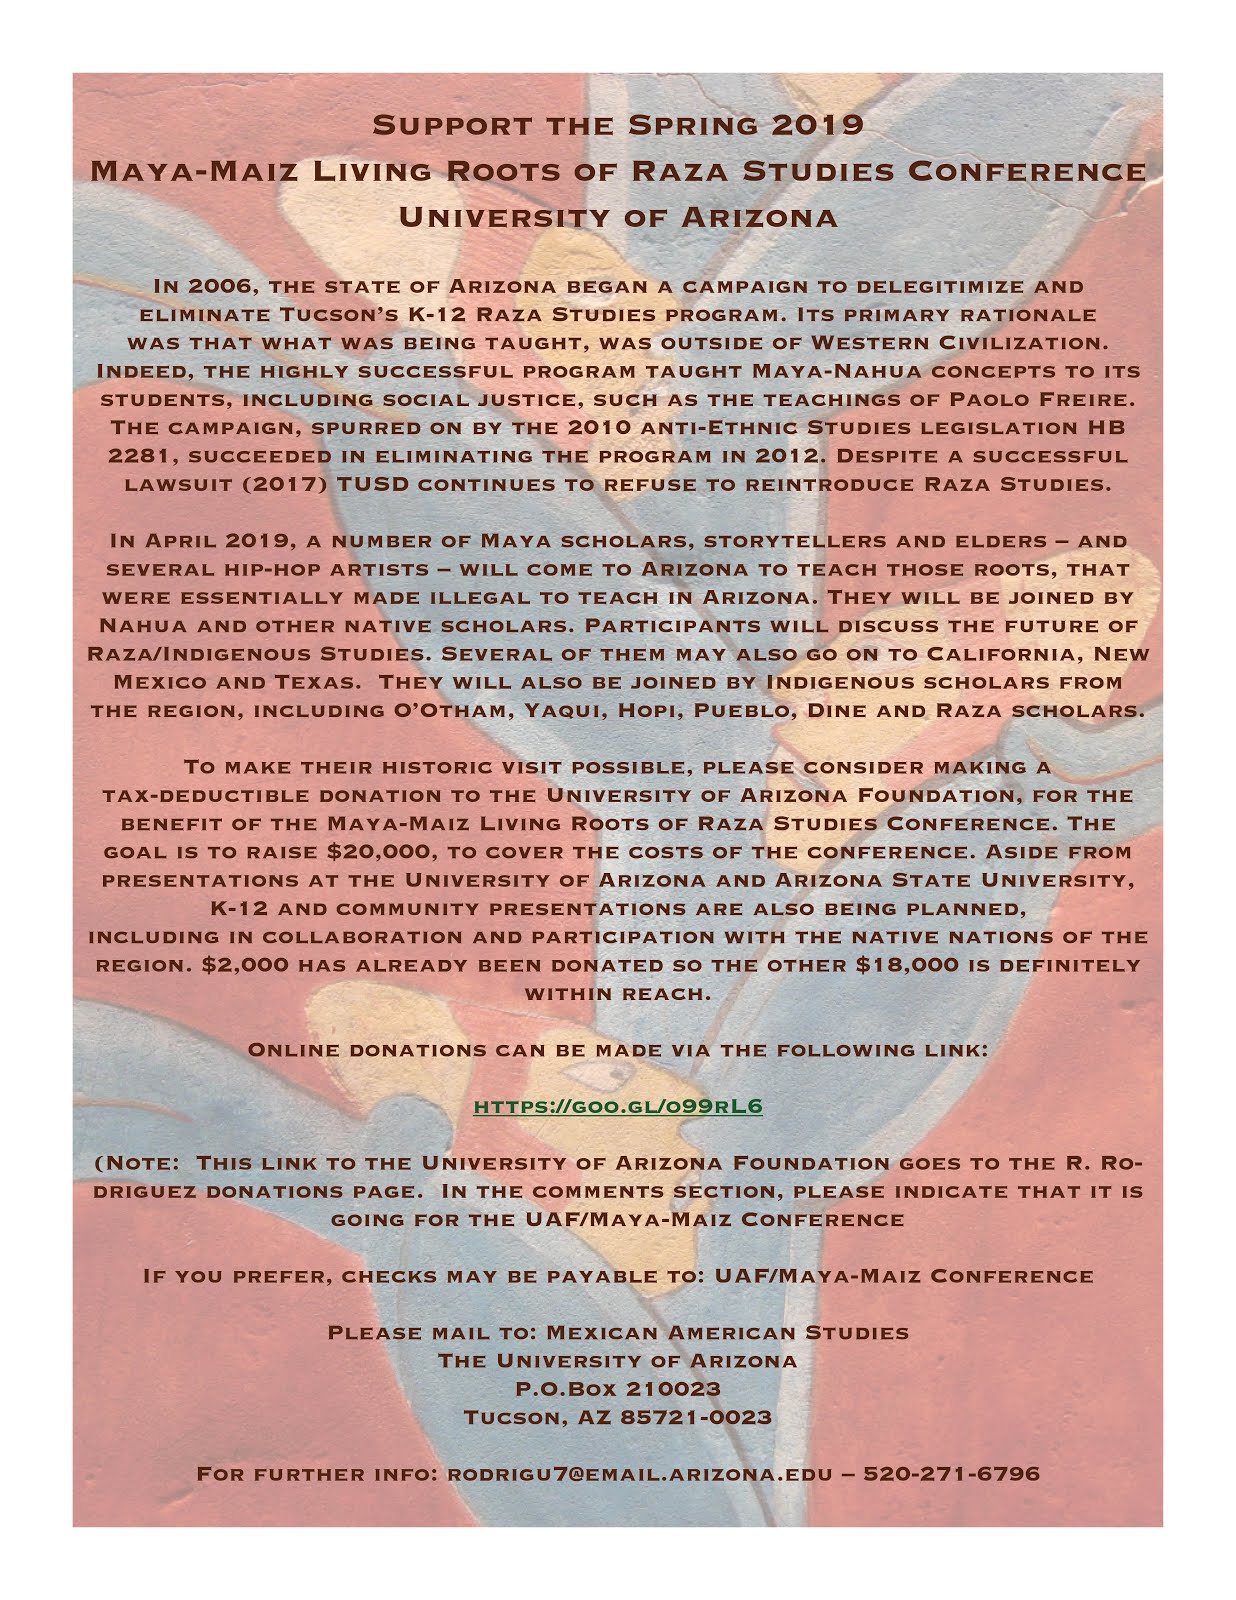 please support spring 2019 maya maiz living roots raza studies conference at the university of arizona this is the active link here